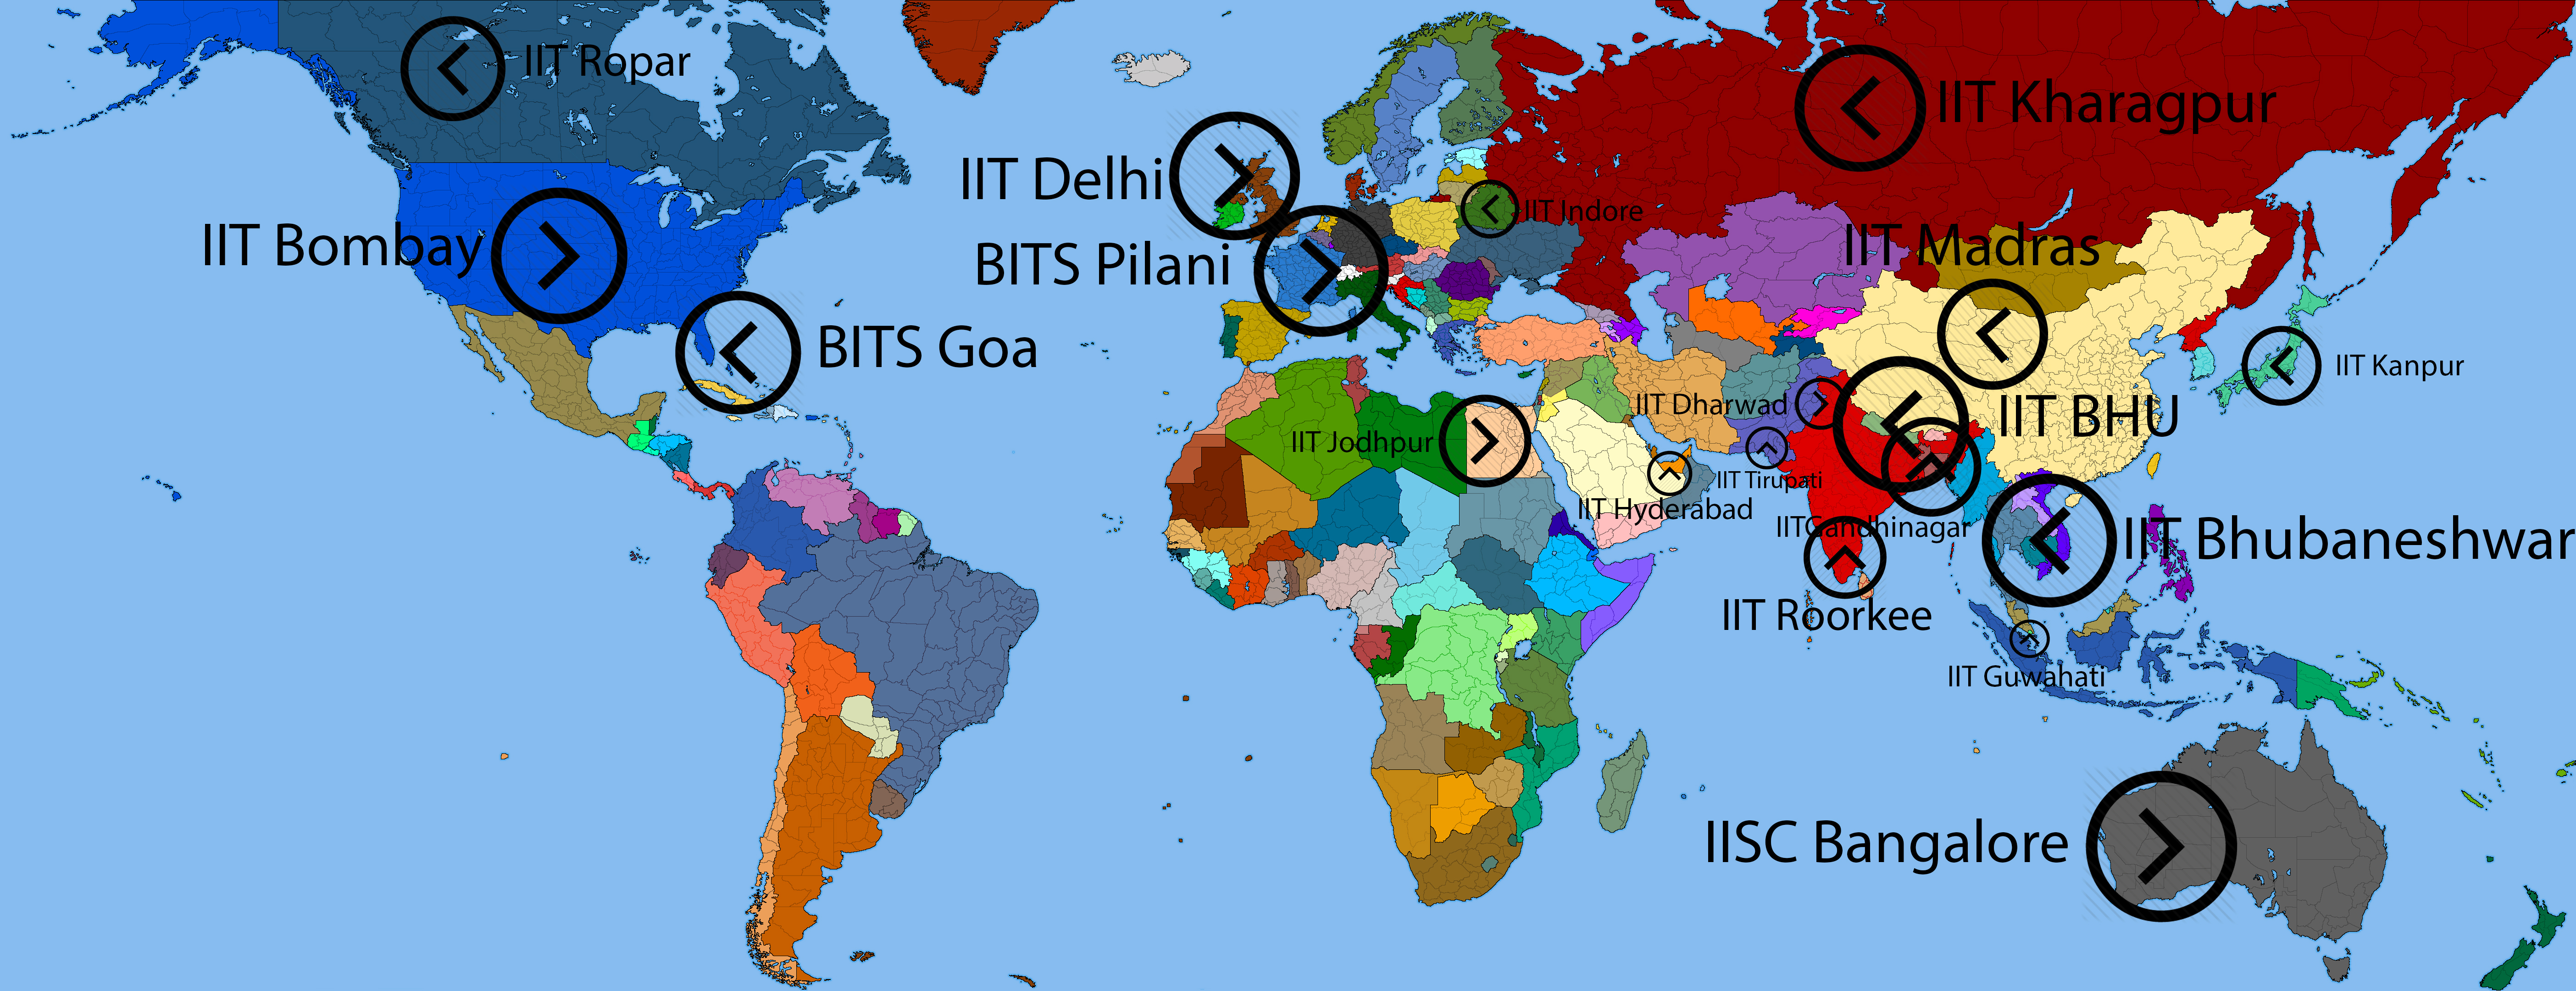 Iits on world map which country your iit represents askiitians wml7g1 gumiabroncs Gallery